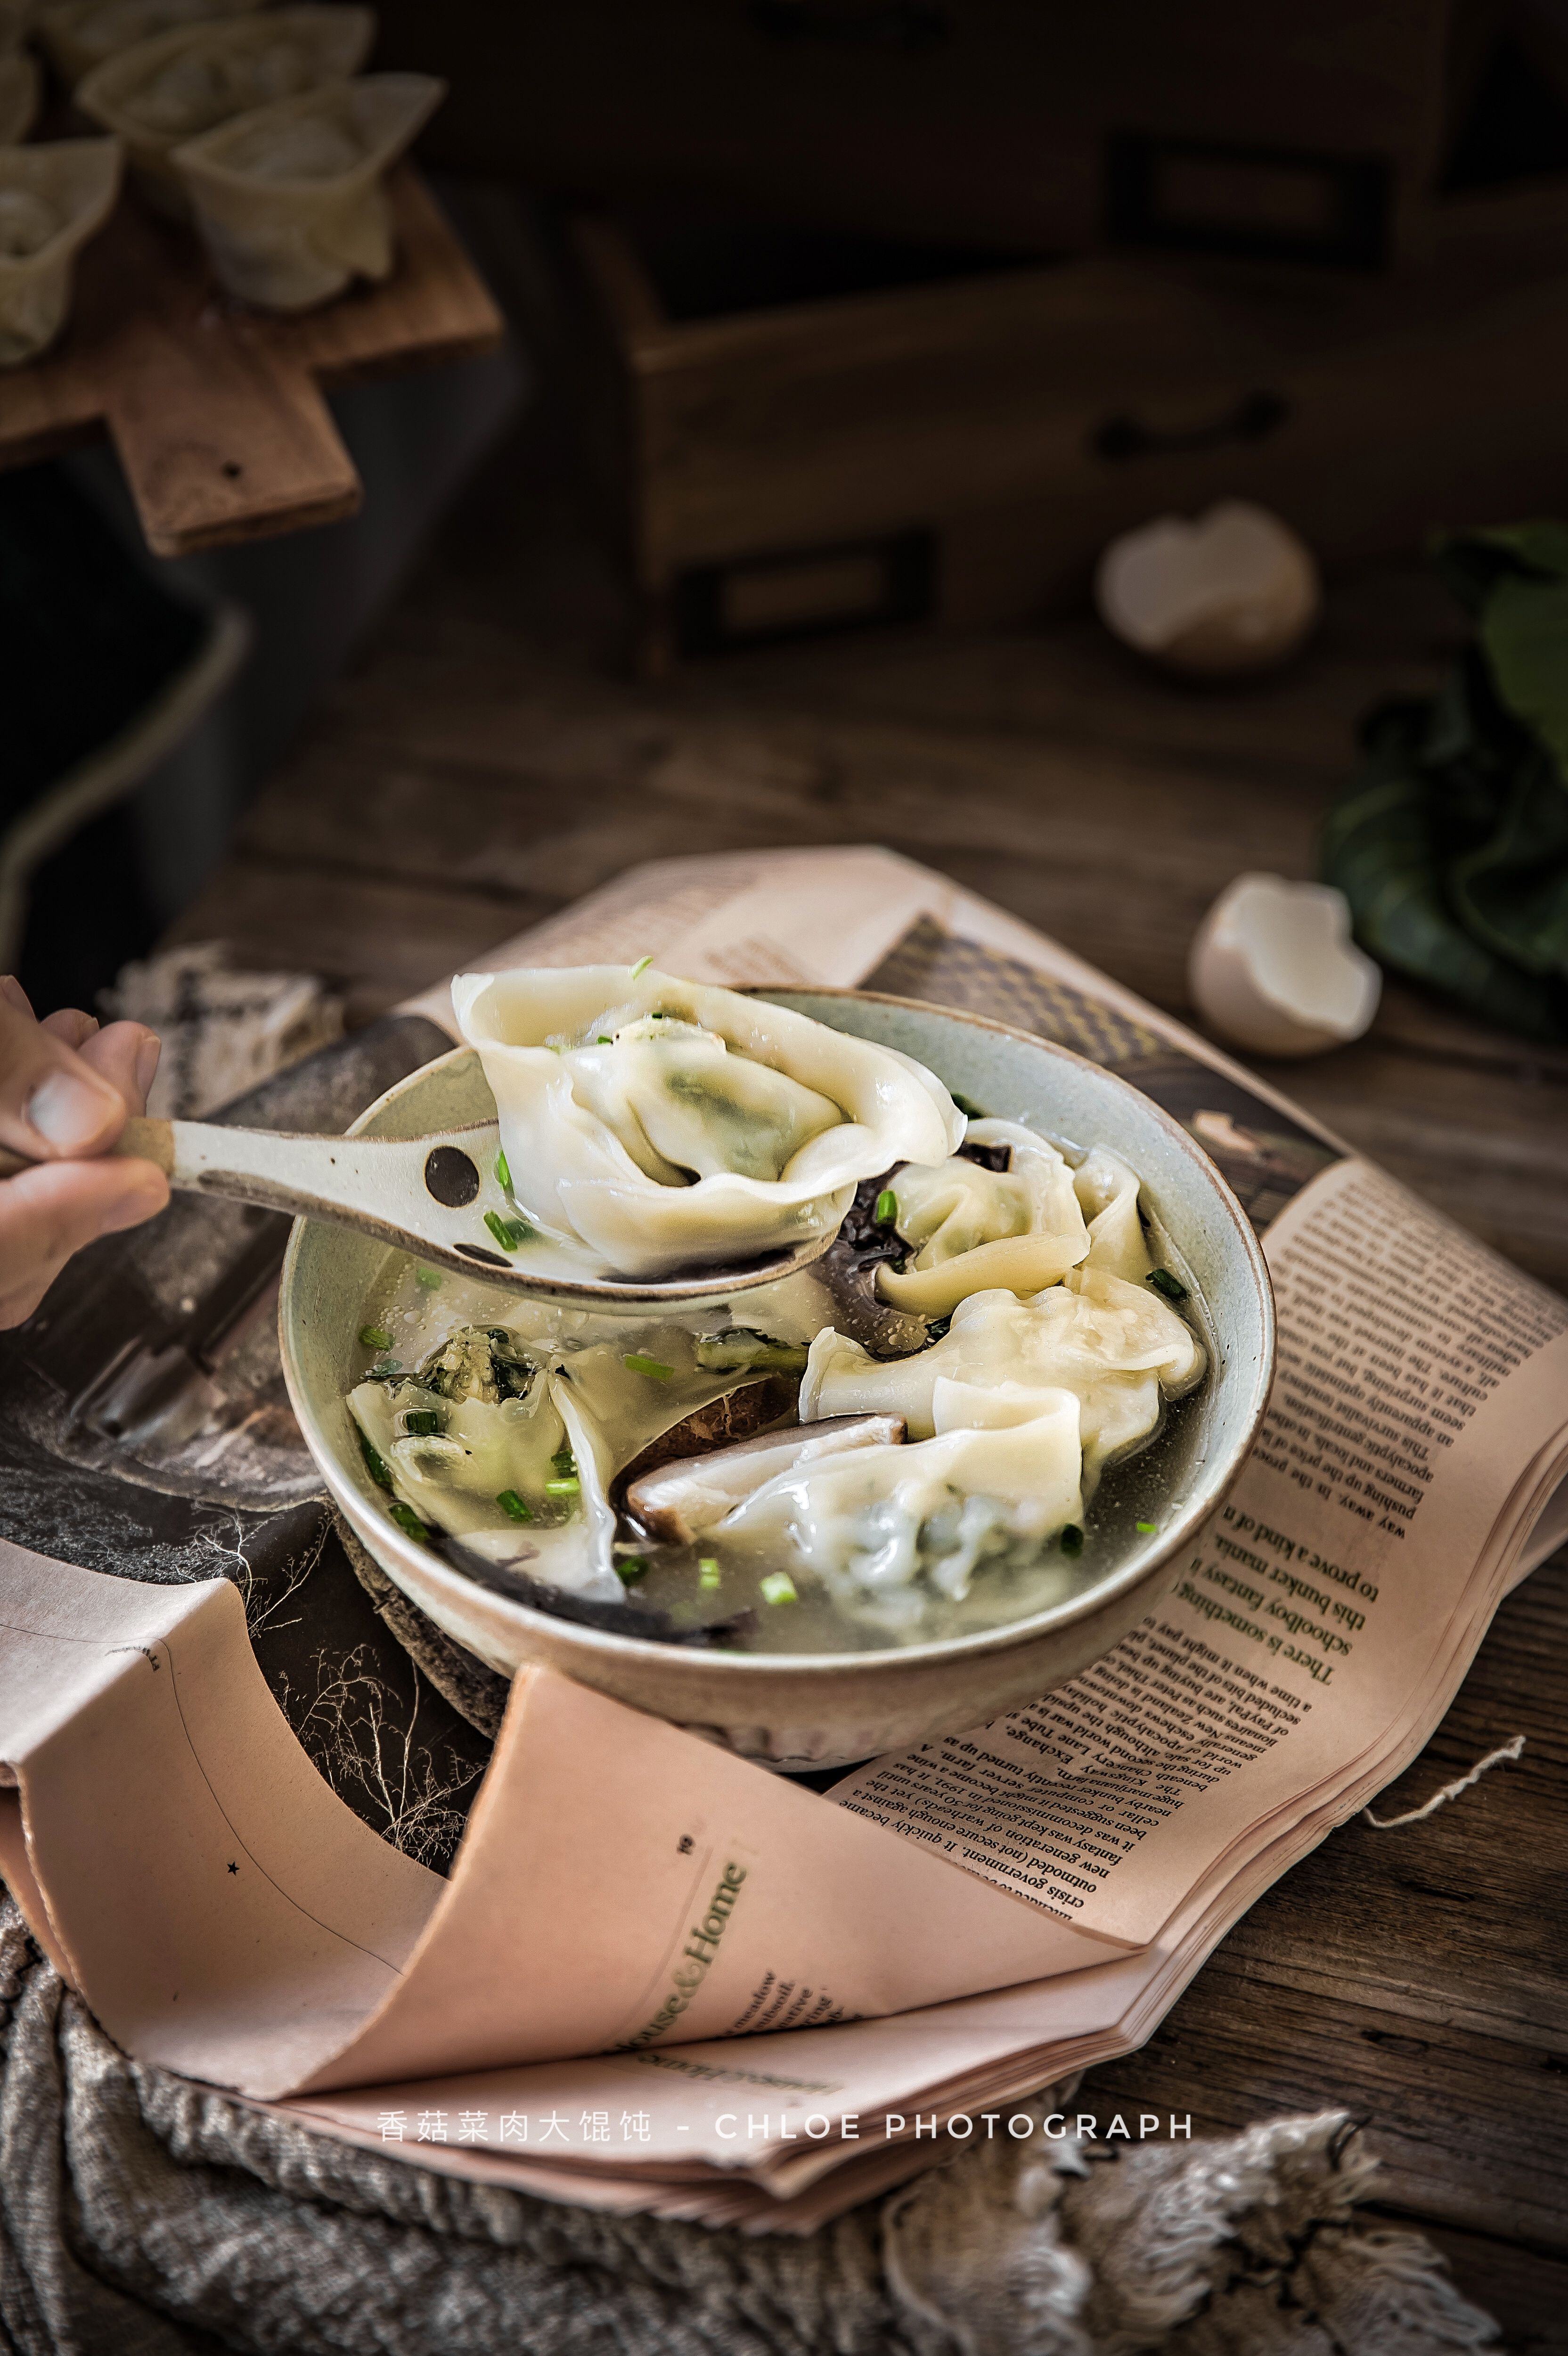 Pin By Crazy Go On Chinese Food Healthy Food Photography Entertaining Recipes Food Photo